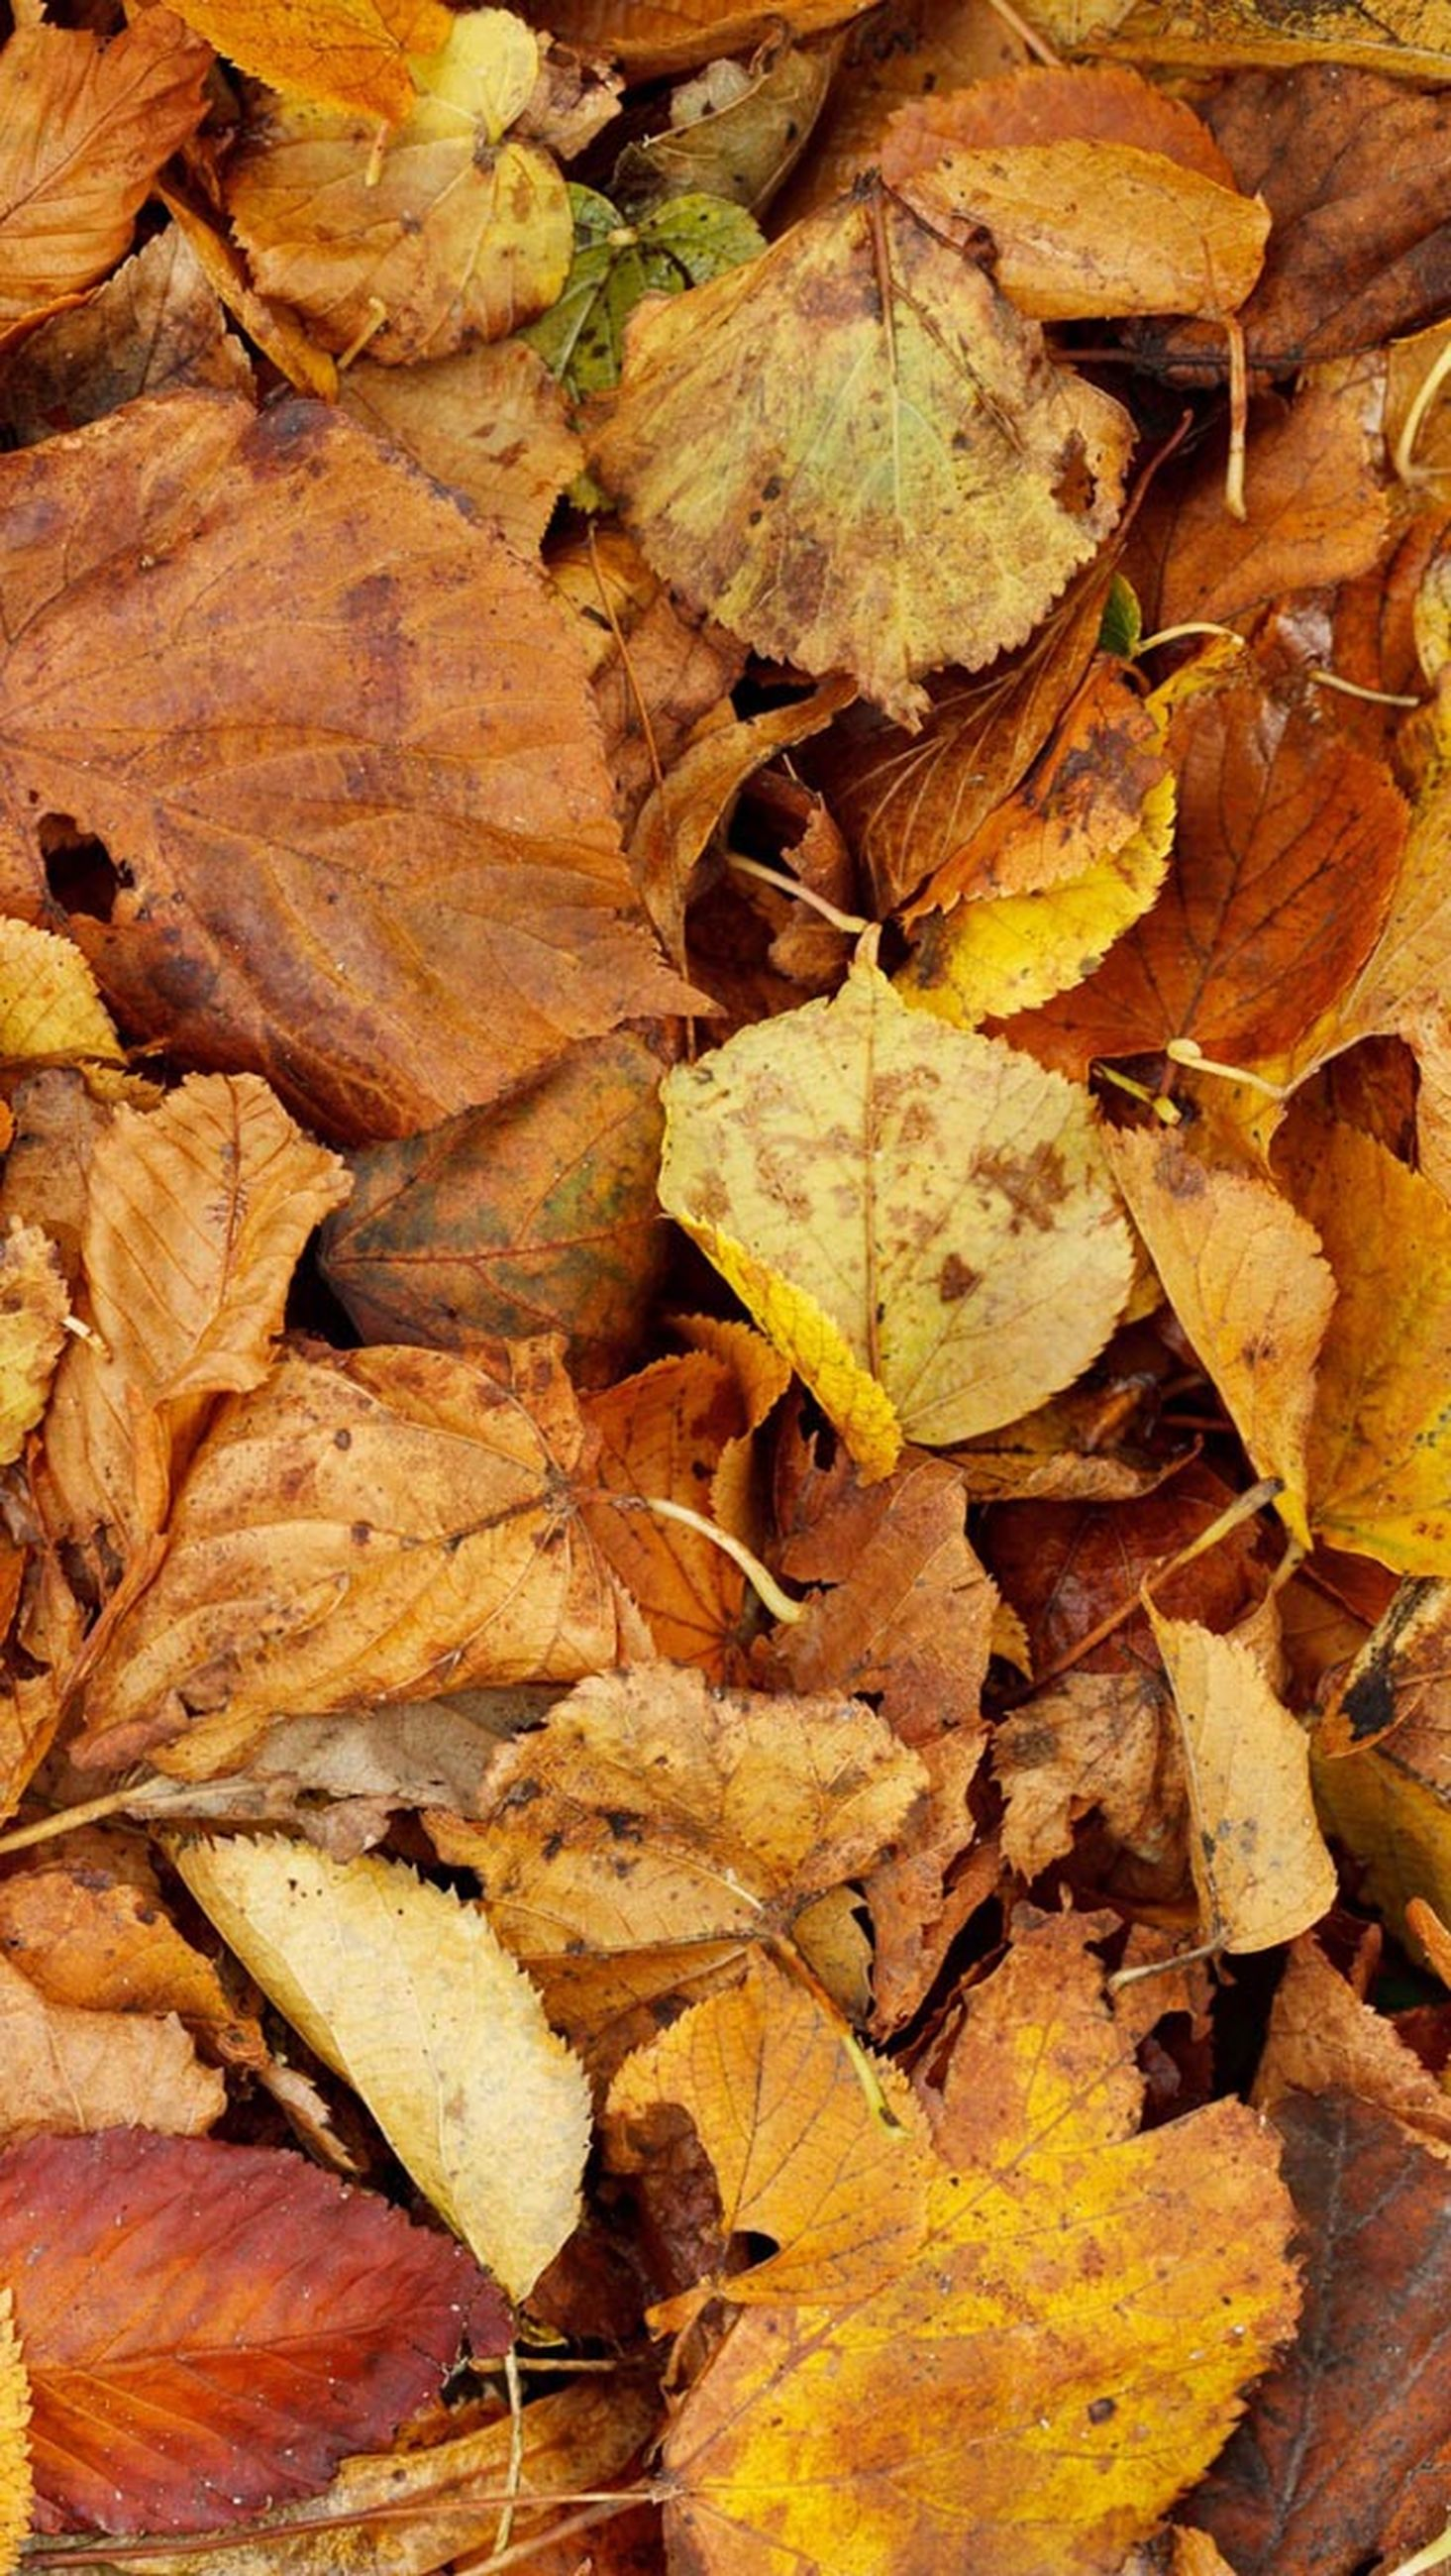 autumn, leaf, full frame, change, backgrounds, dry, leaves, season, abundance, high angle view, close-up, natural pattern, yellow, fallen, nature, brown, no people, day, textured, natural condition